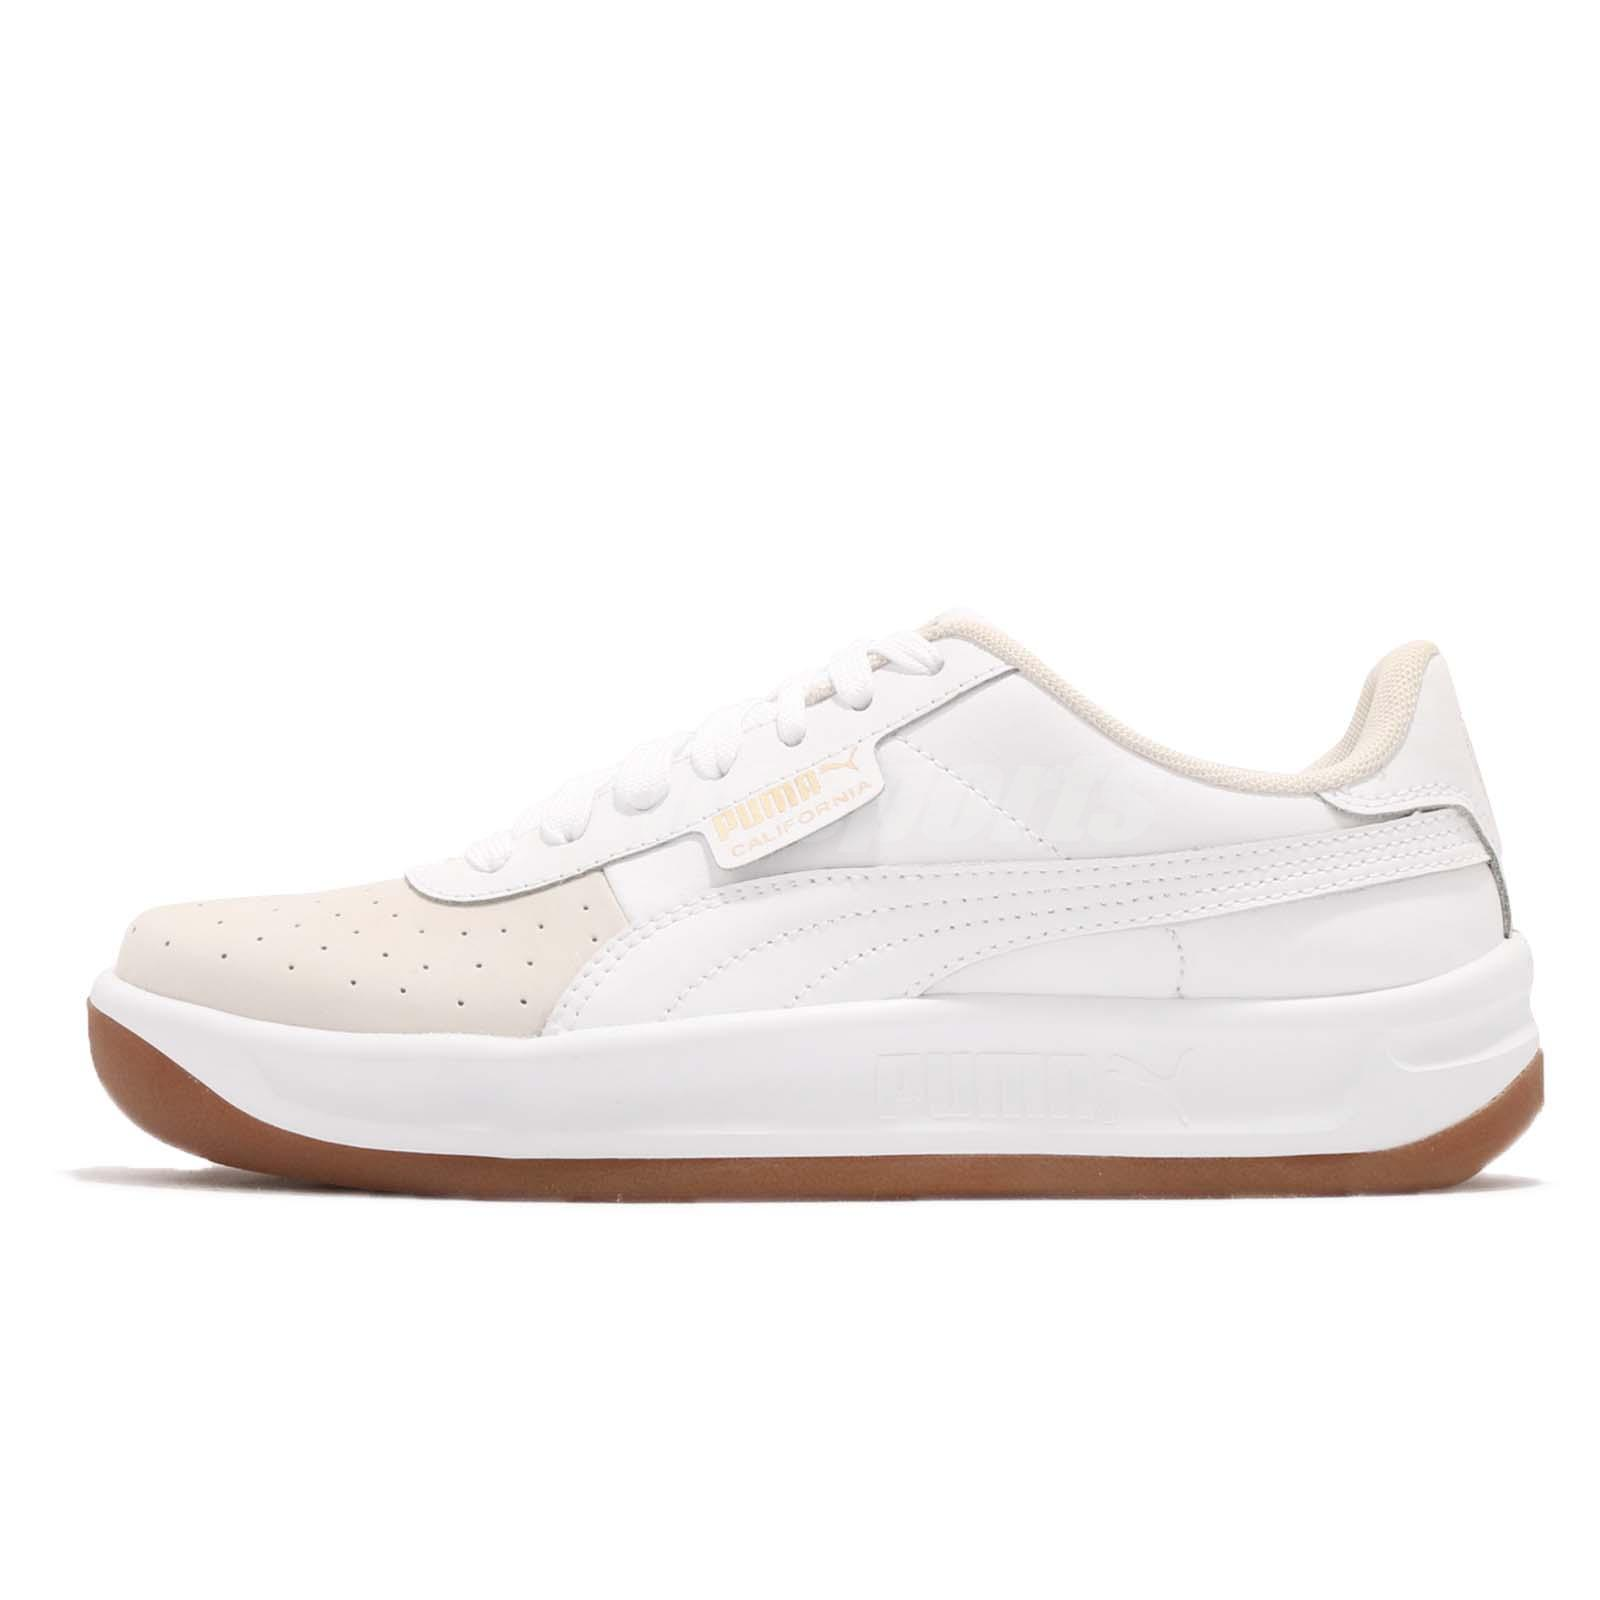 12f9f230070f Puma California Exotic Wns White Gold Gum Women Casual Shoes Sneakers  368135-01